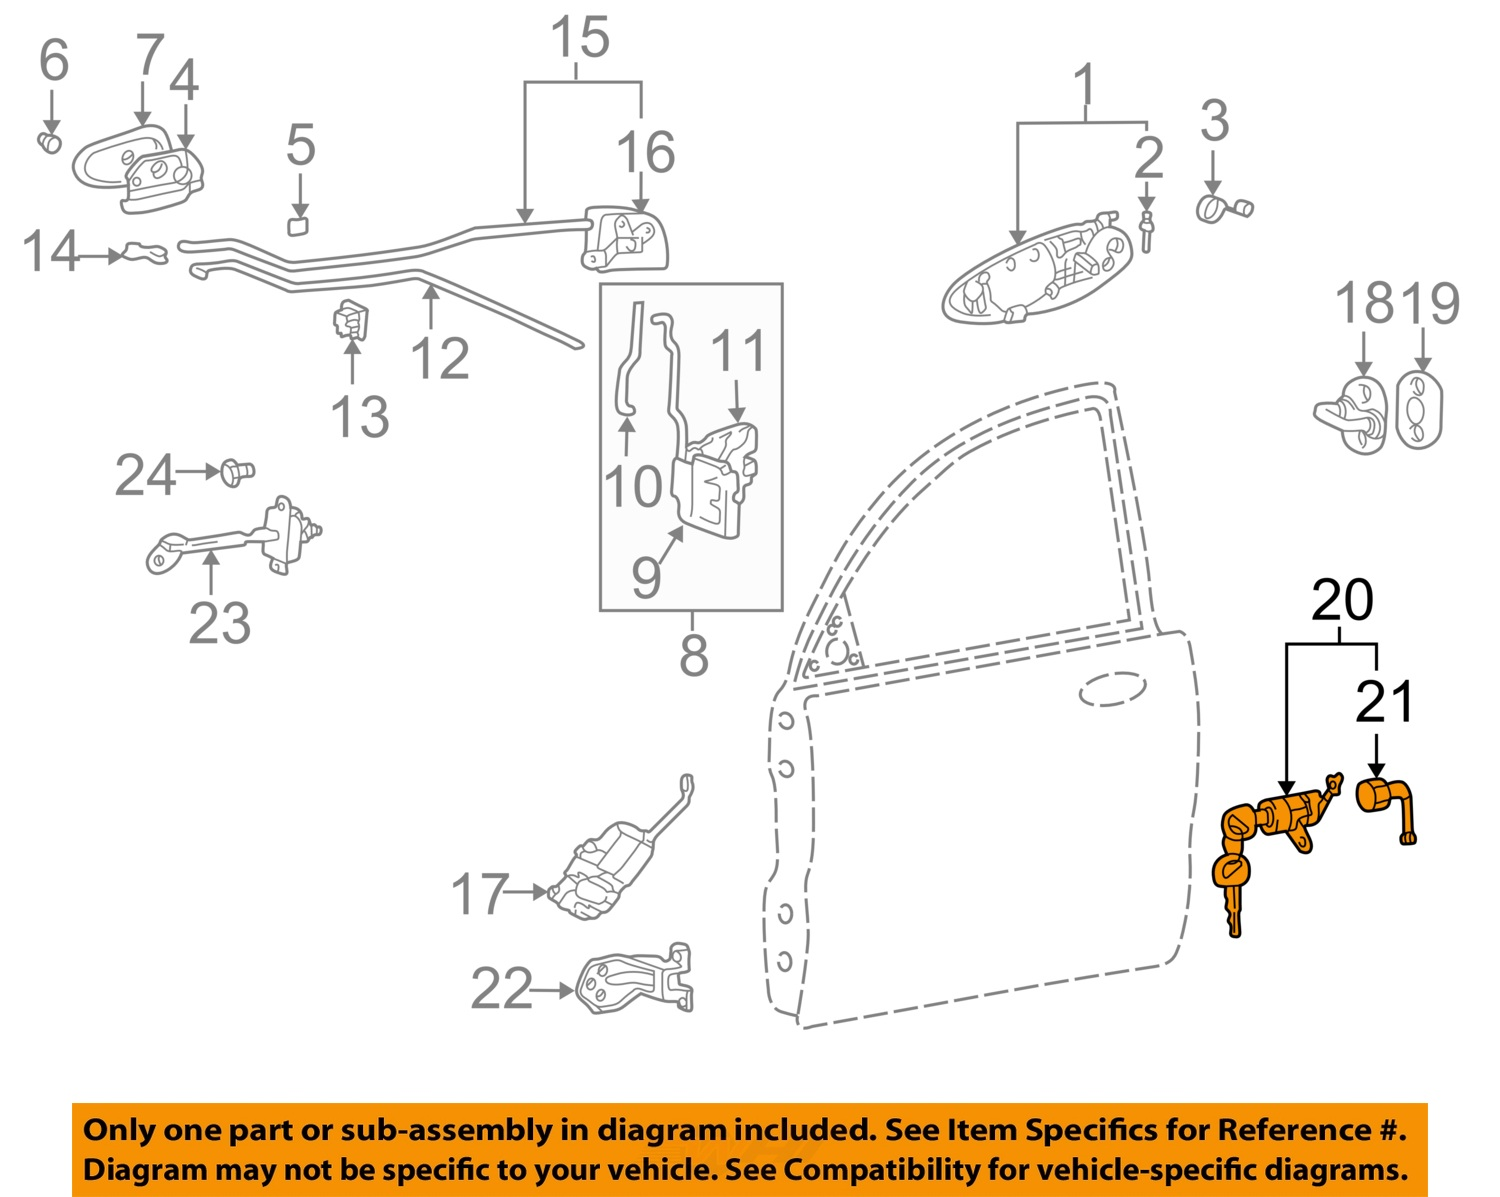 1999 Kia Sportage Driver Door Latch Repair Diagram